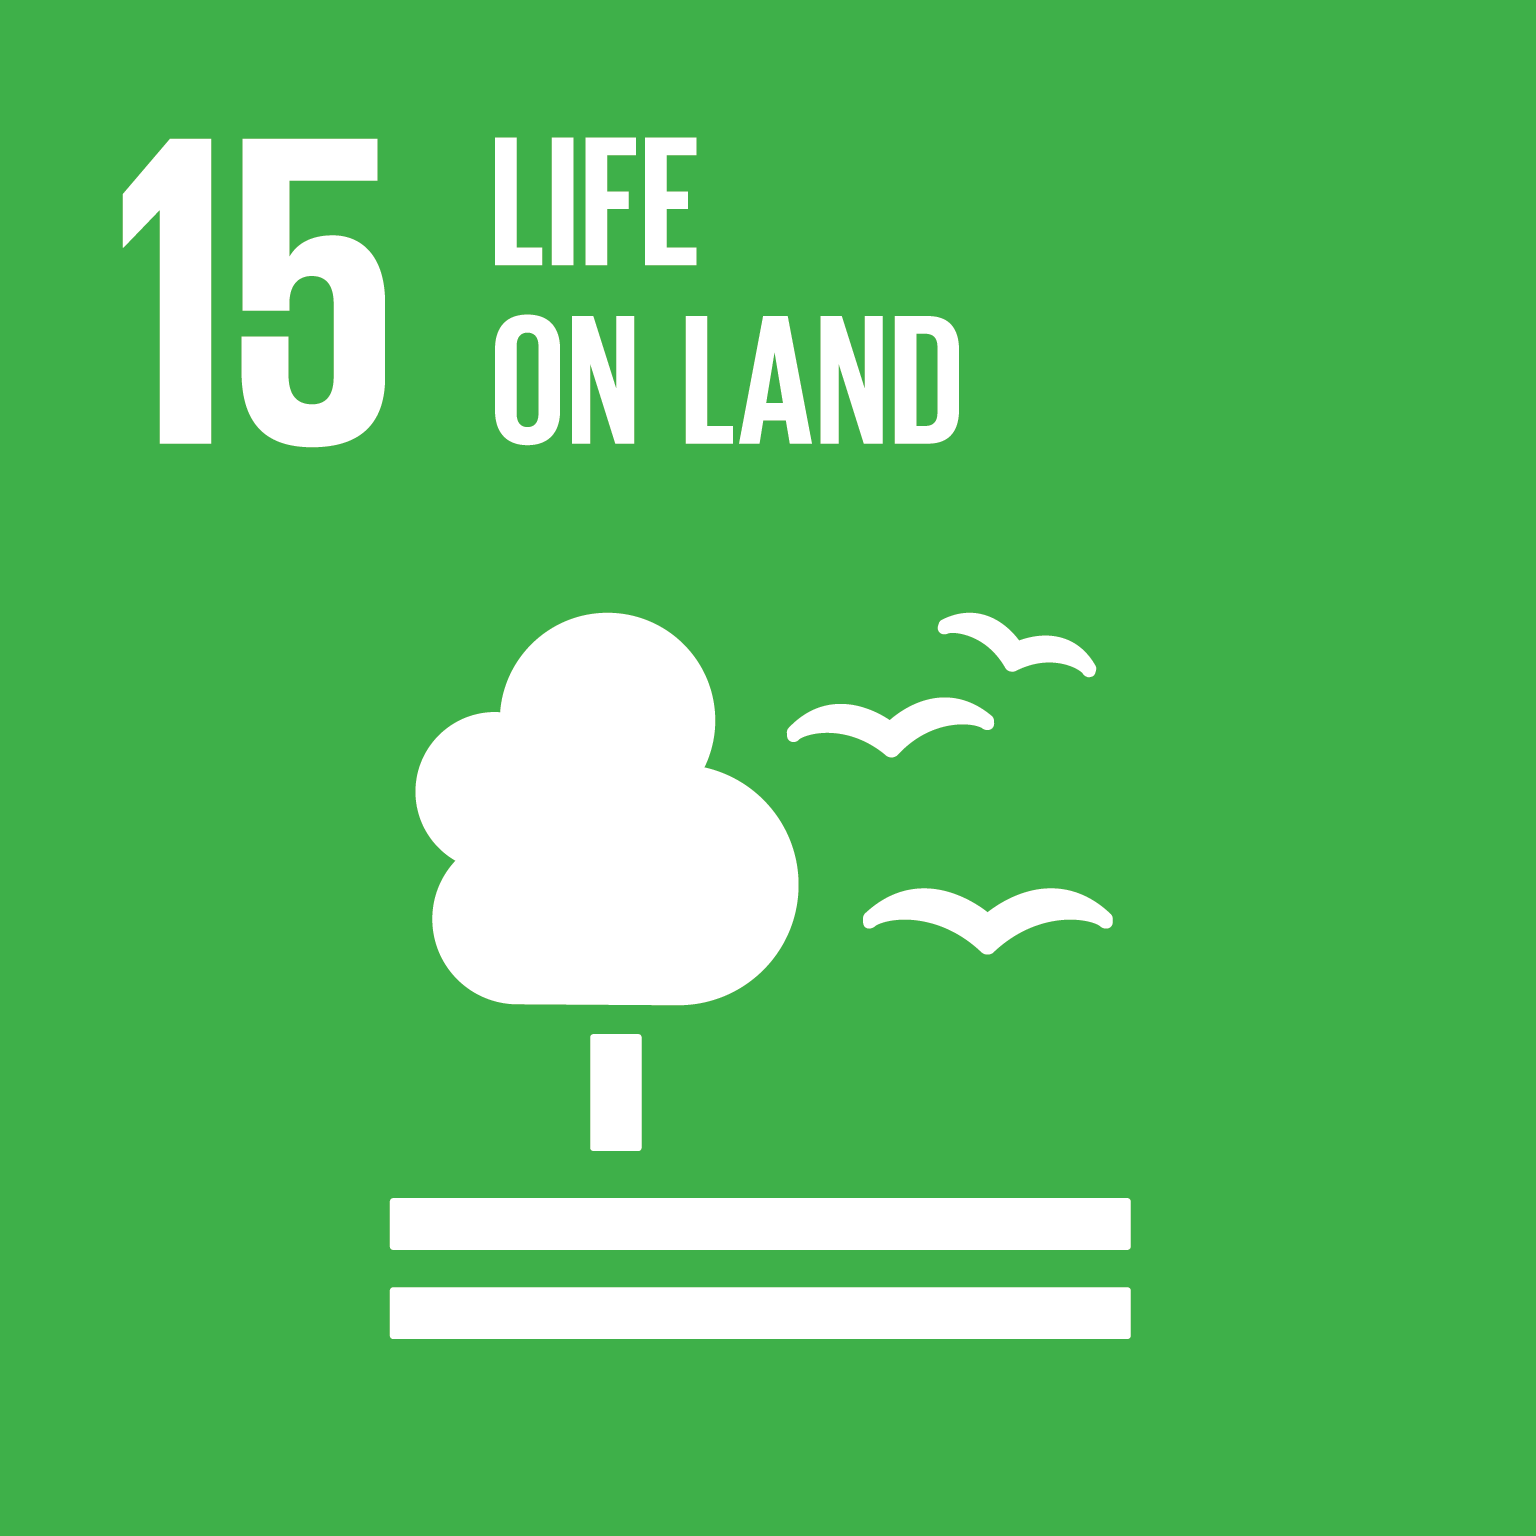 Goal 15: Life on Land, the text of this infographic is listed below